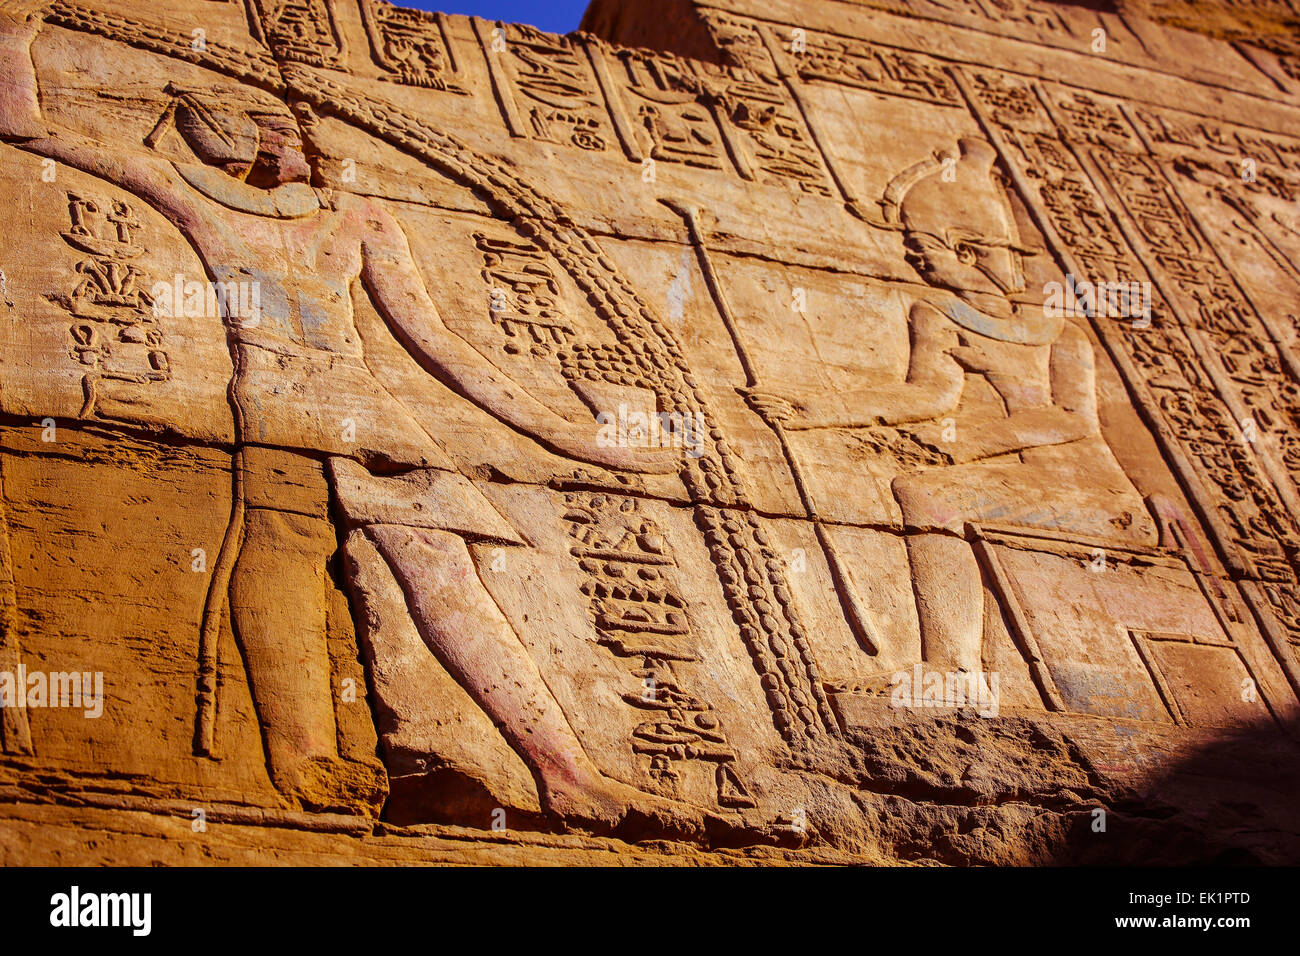 Upper Egypt   west bank, Luxor, Egypt, Africa - Stock Image